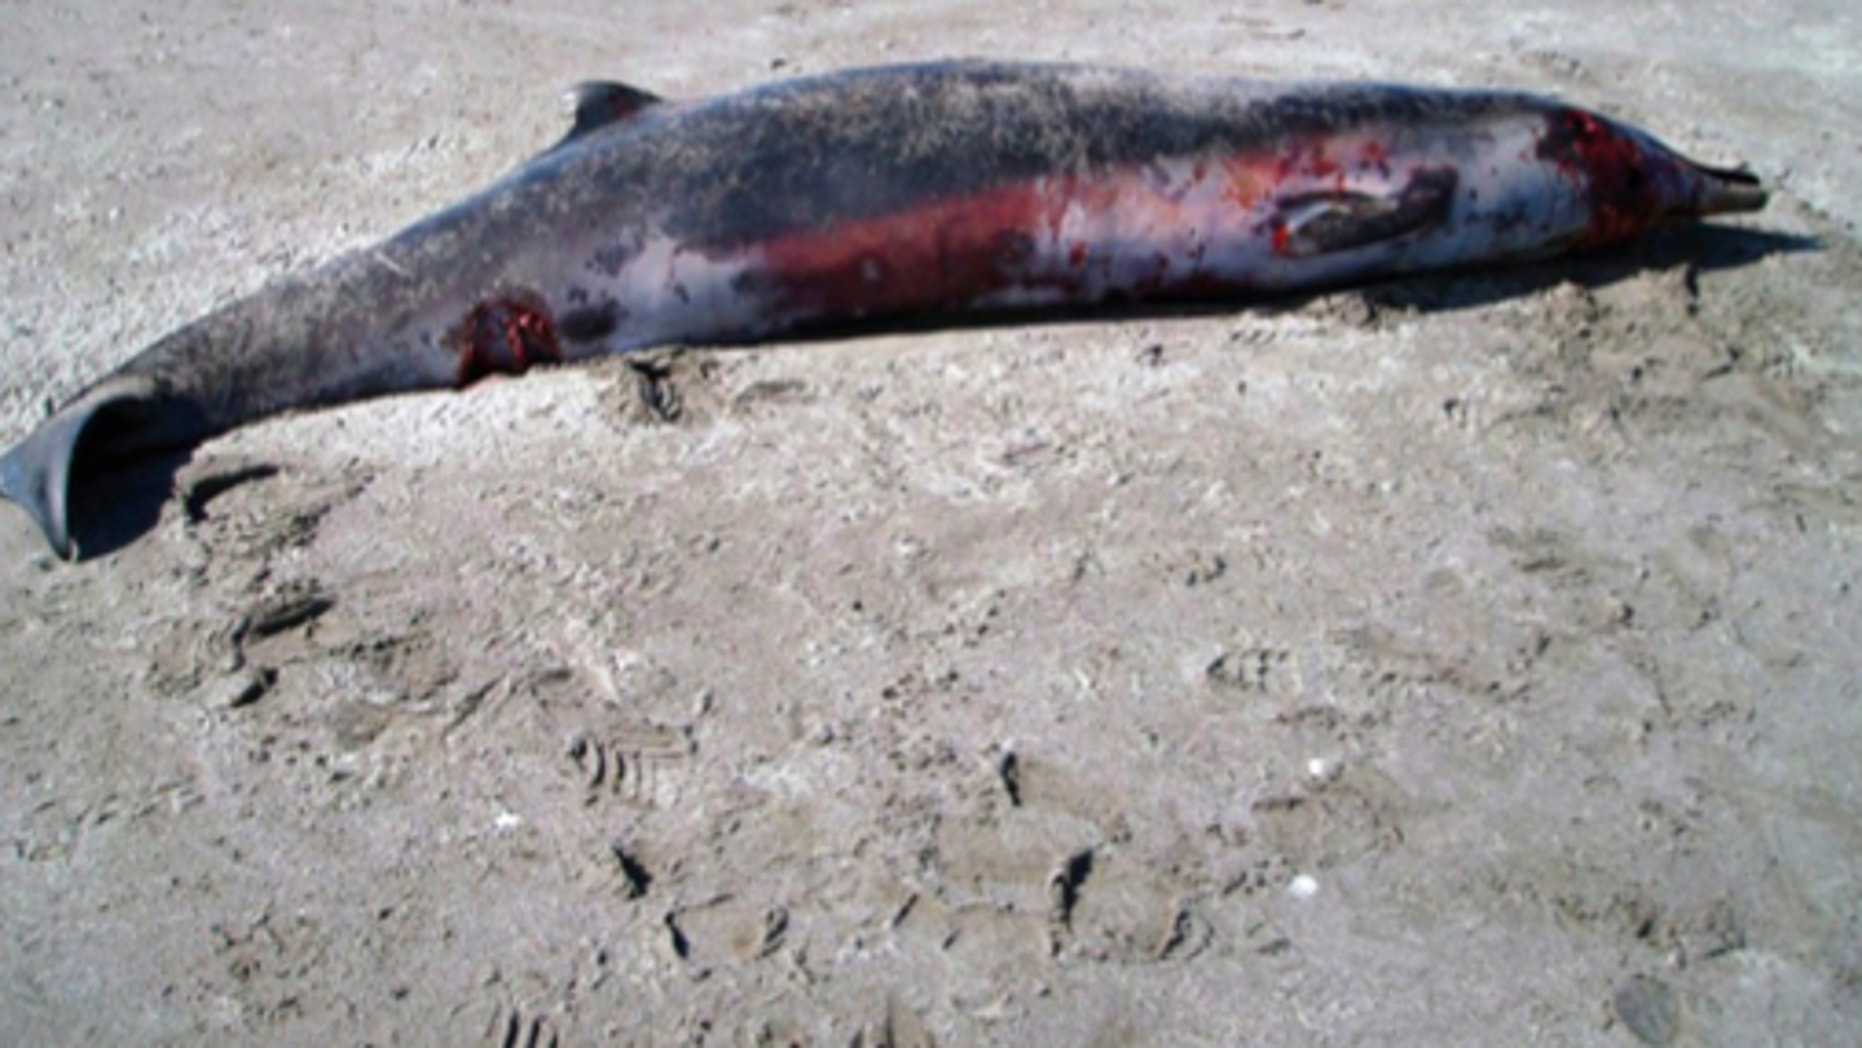 The world's rarest whale, the spade-toothed beaked whale, has been spotted for the first time in New Zealand. The whale stranded and died on a beach in December 2010.